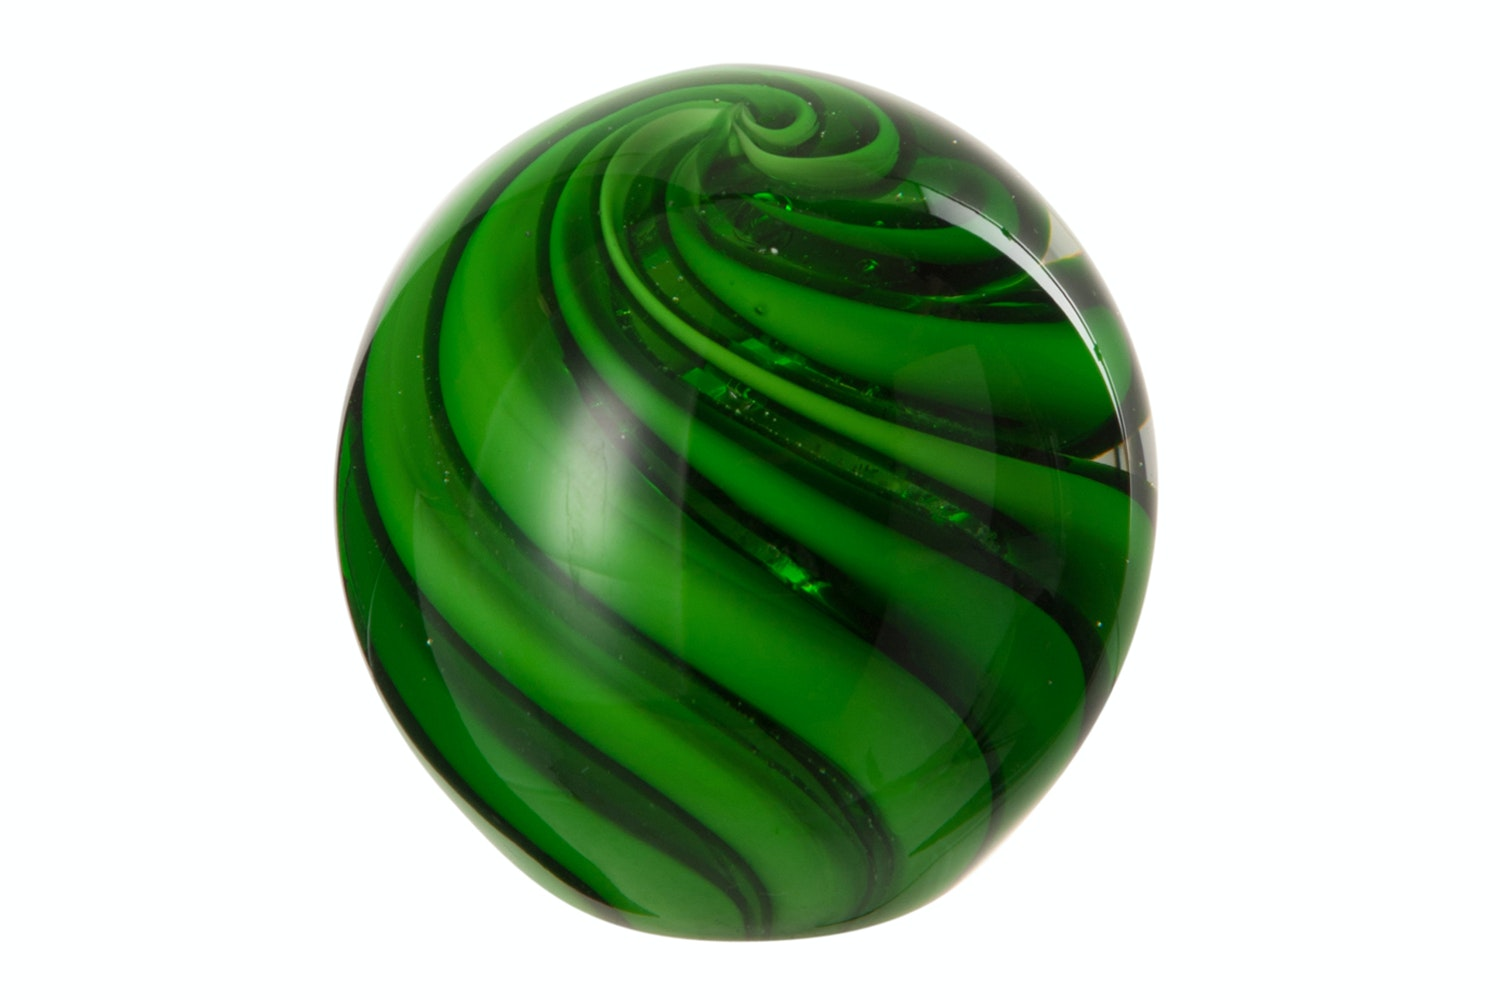 Spiral Paperweight in Green